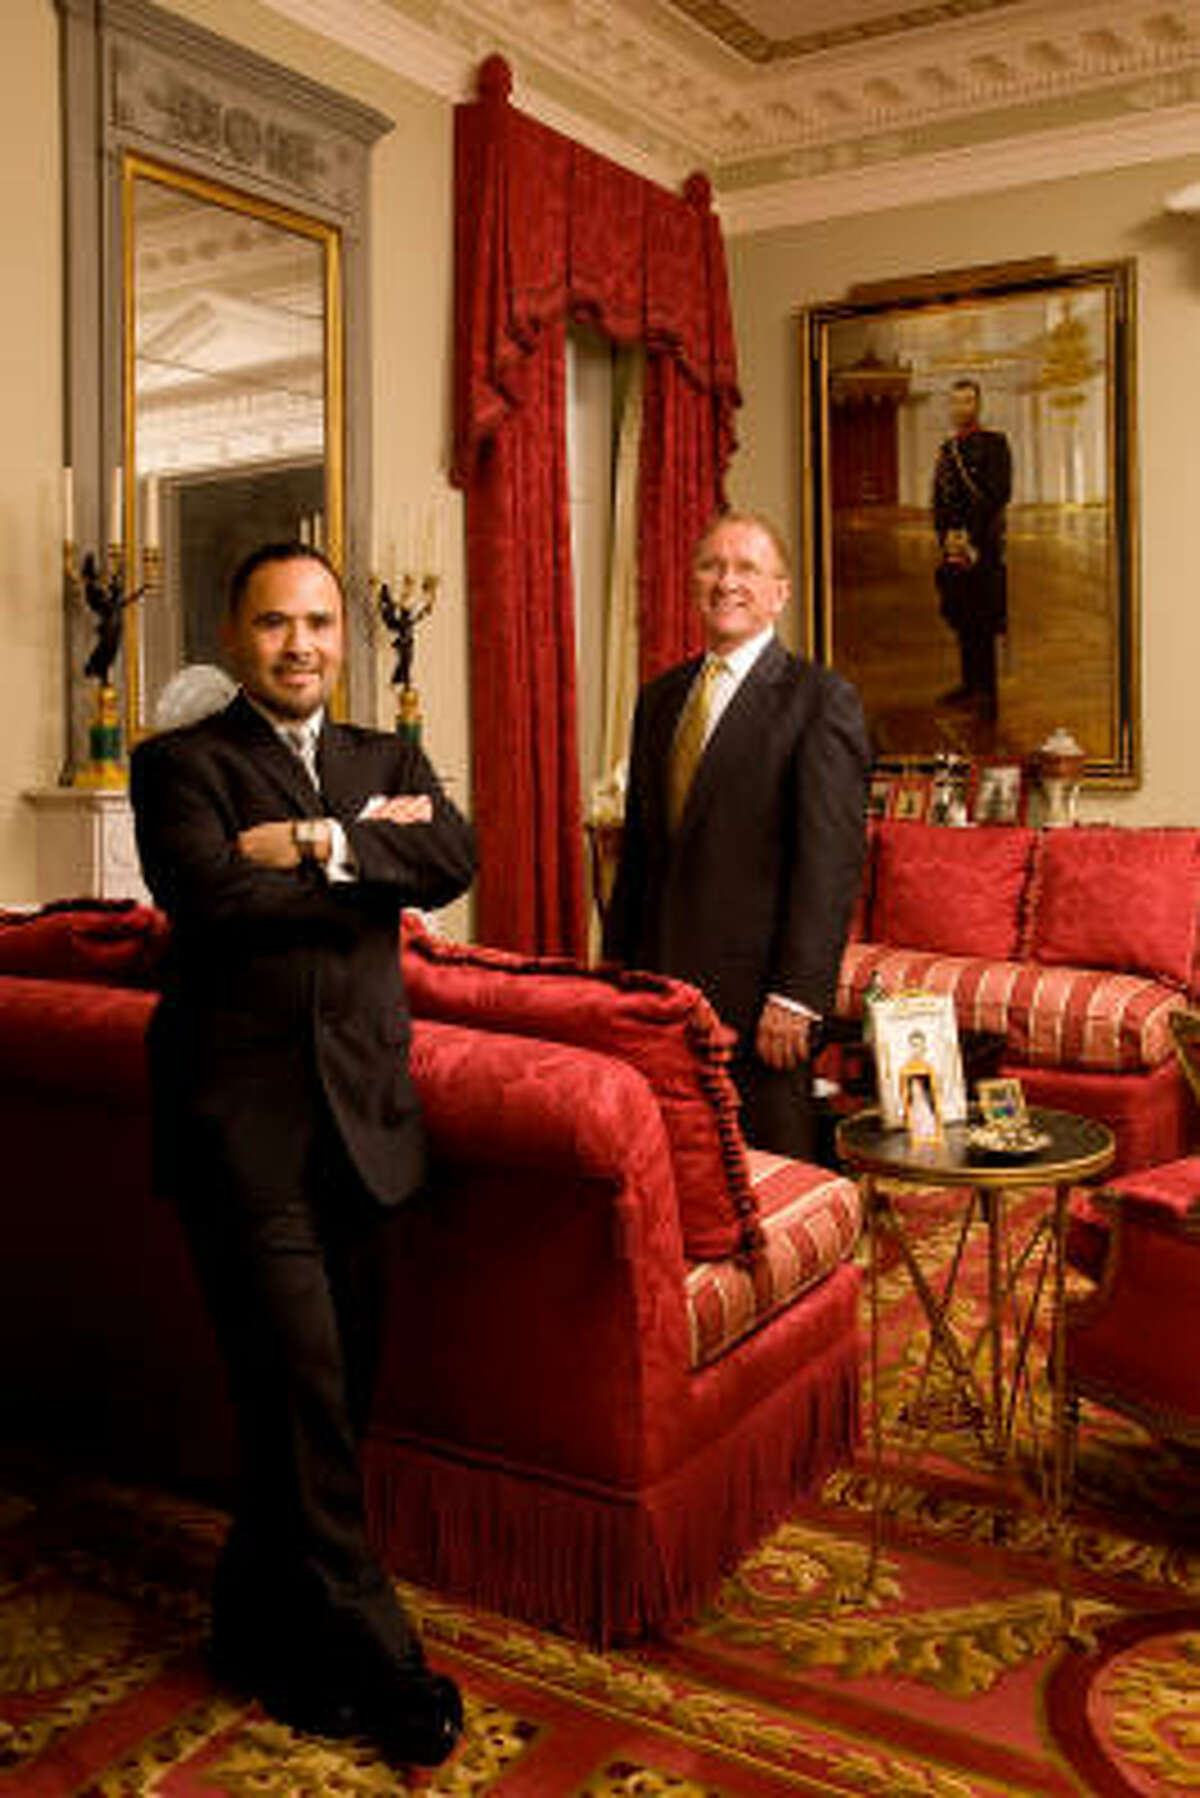 Larry Hokanson, right, is proud of the River Oaks home he and designer Michael Siller made fit for Russian czars. Today they live in a more modest home near Memorial Park.